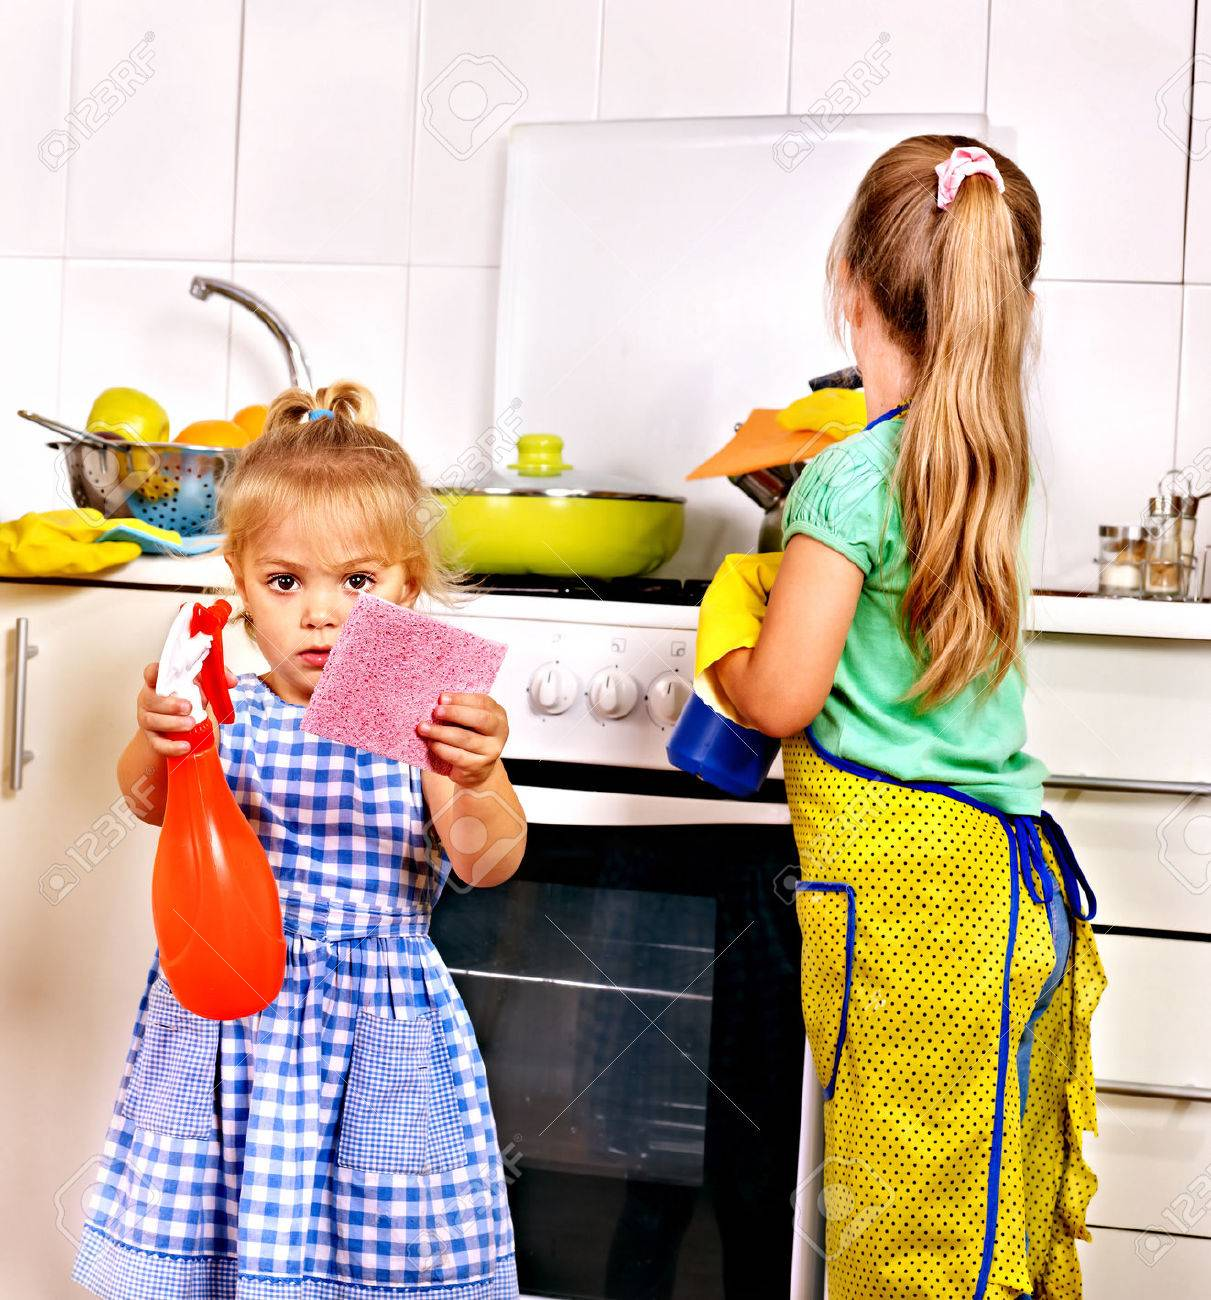 White rubber apron - Rubber Apron Children Cleaning Kitchen Housekeeping